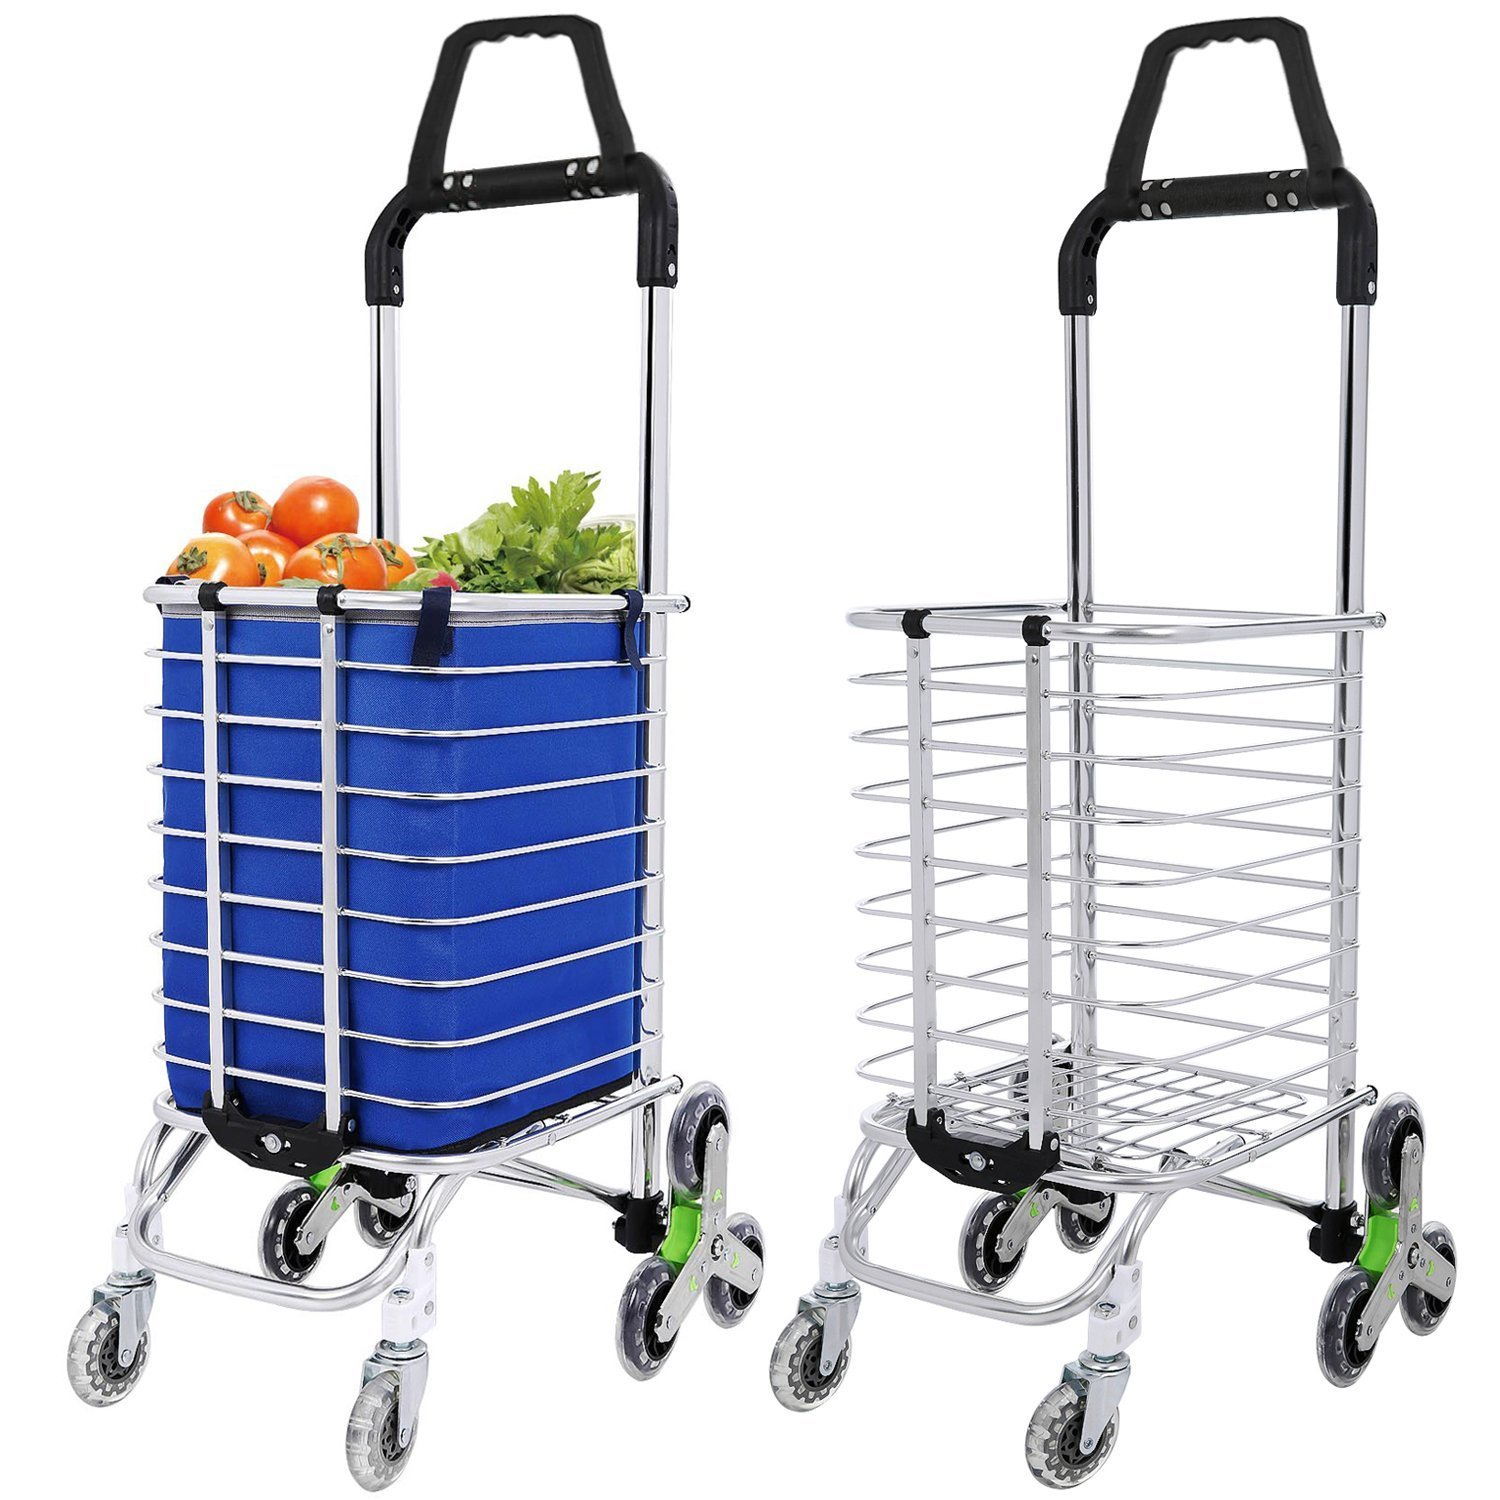 Meoket Folding Shopping Cart Heavy Duty Stair Climbing Grocery Swivel Utility Cart with Tri-wheels and Removable Oxford Cloth Bag